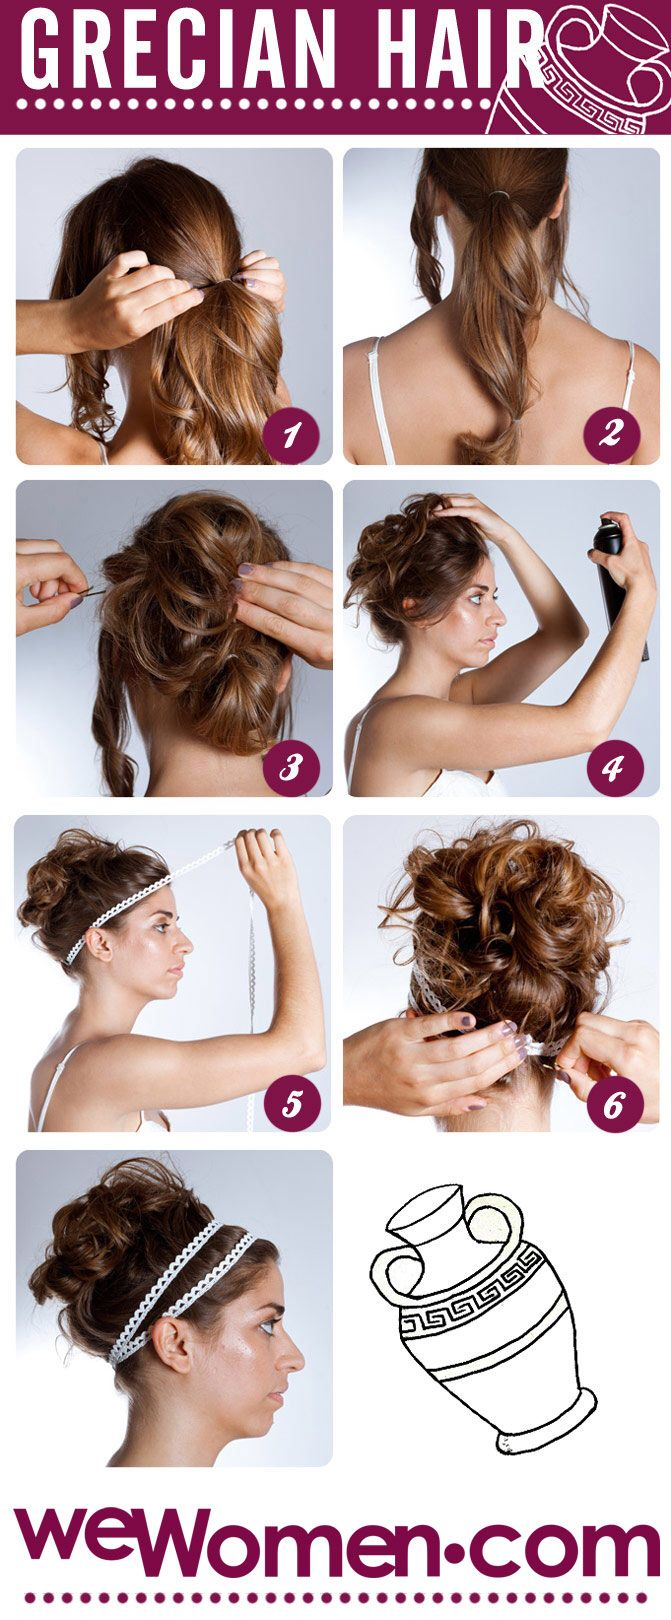 Hairstyles App Impressive 162 Best Style Me Images On Pinterest  Cute Hairstyles Hairstyle